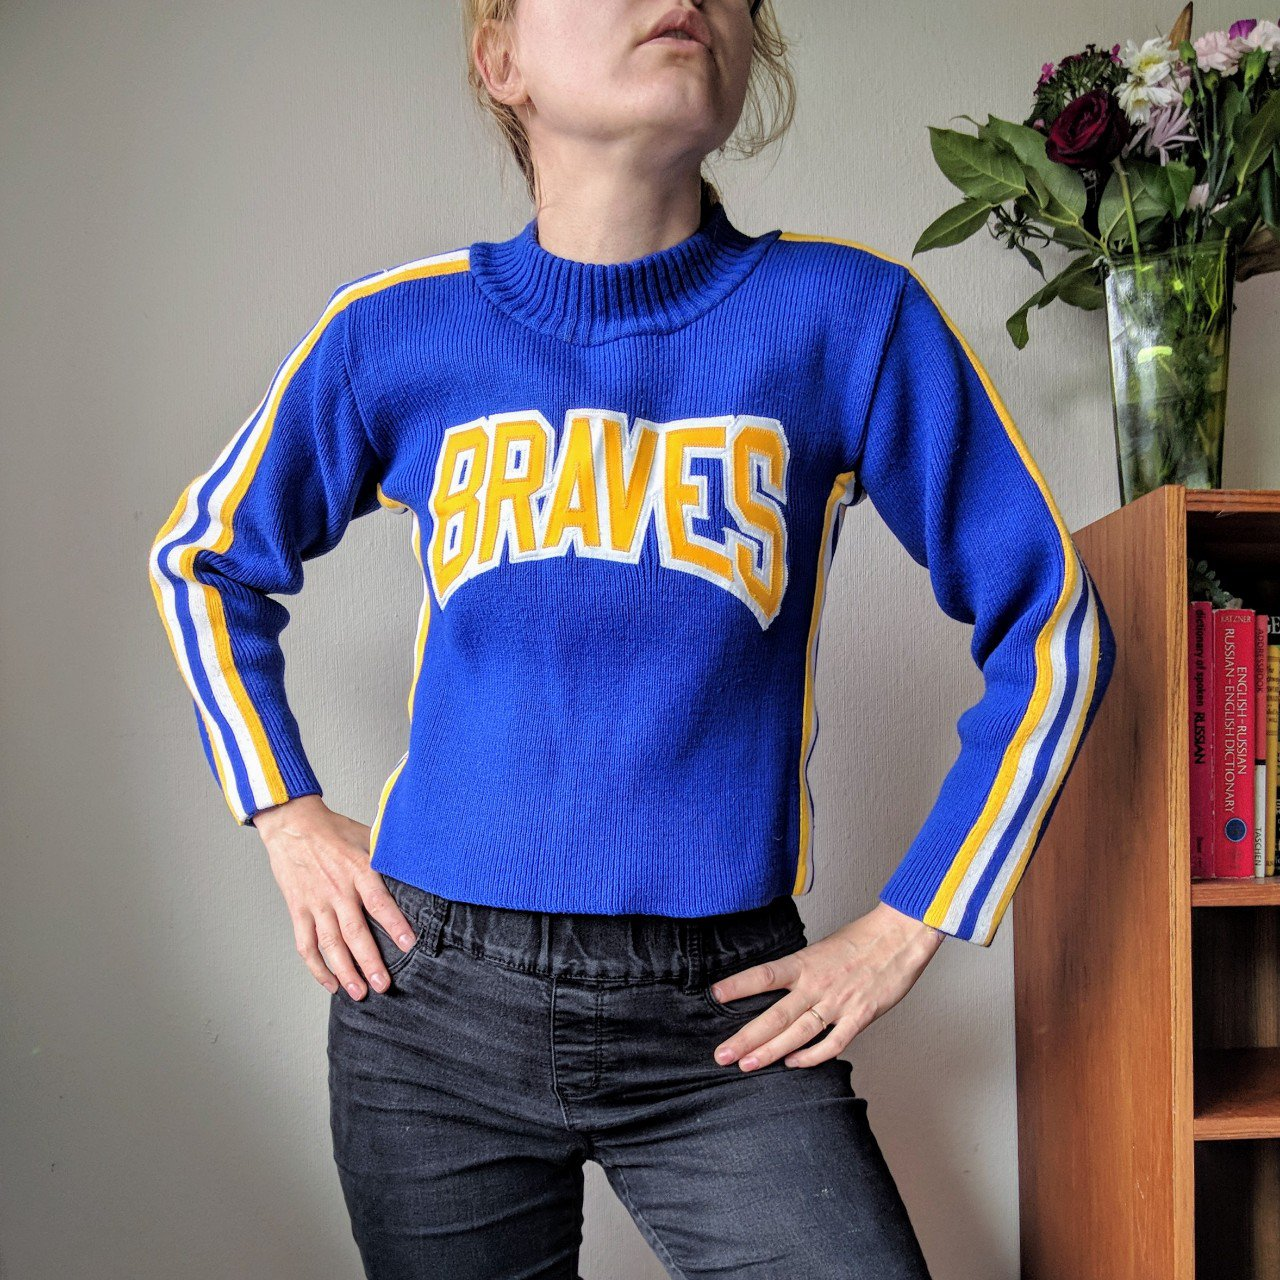 a6cd685c9c9d7 Vintage Cheer Sweater! There is something